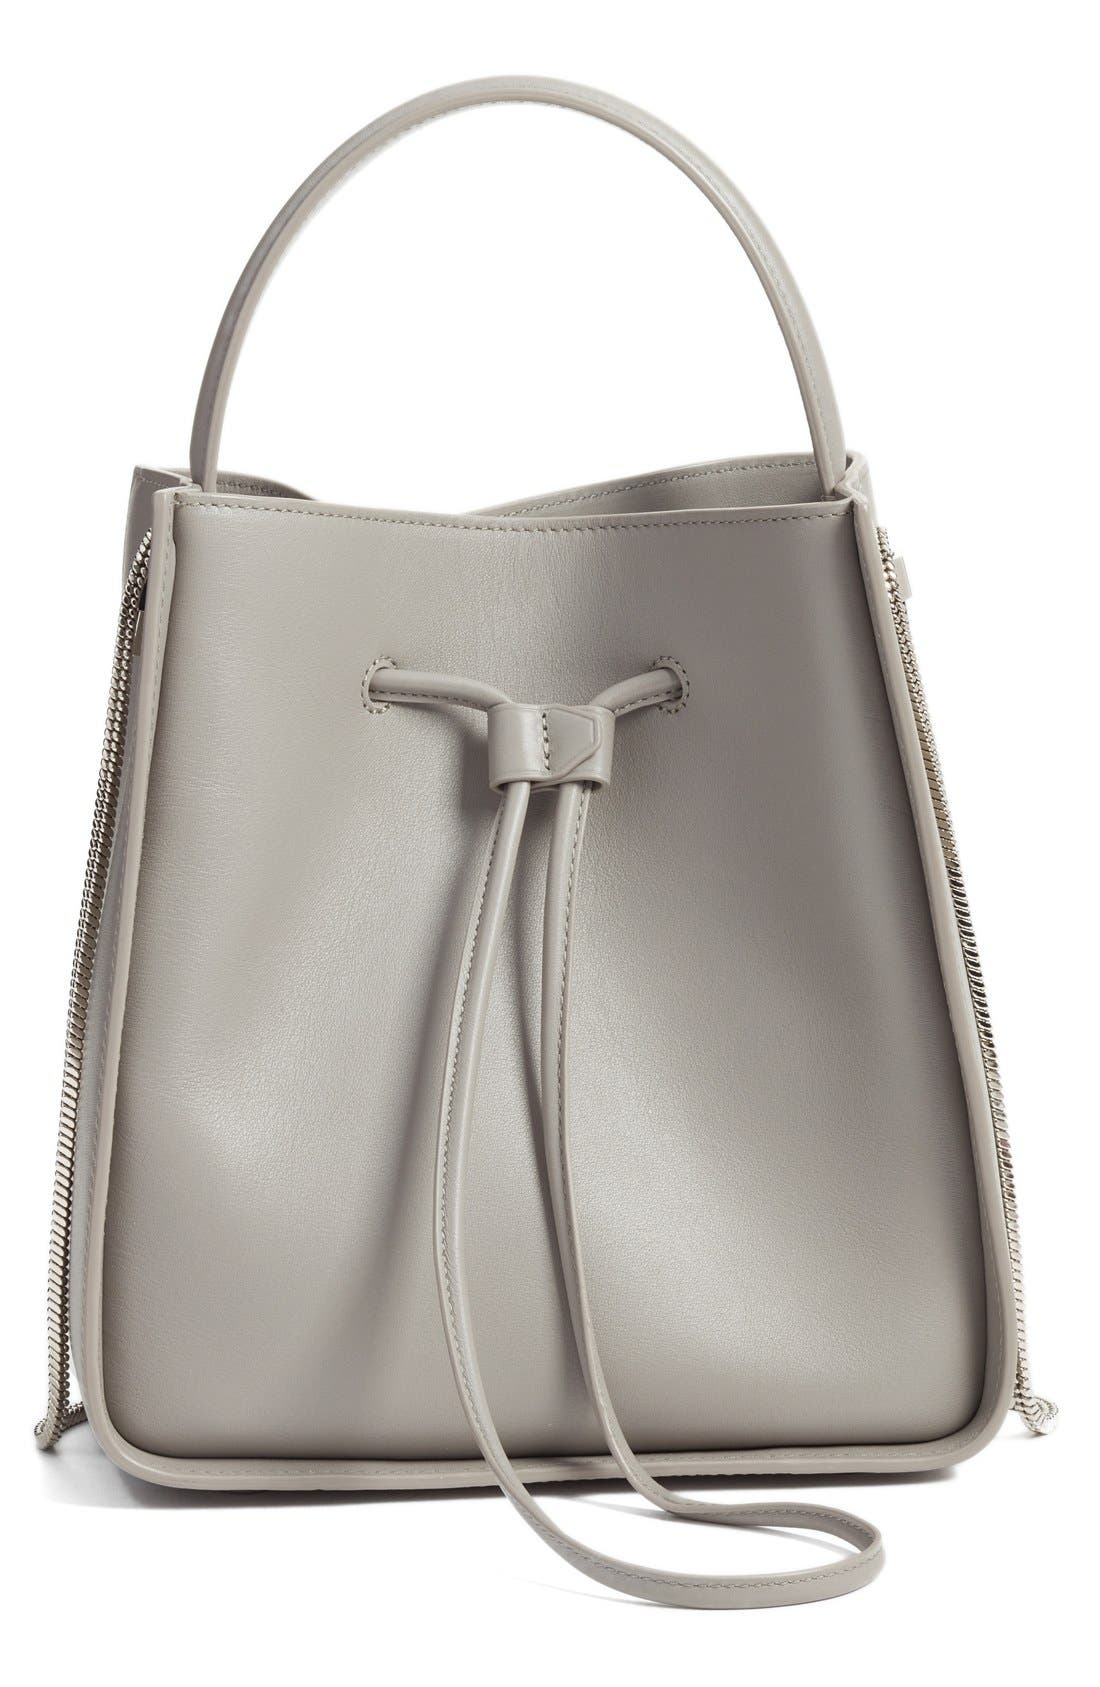 Main Image - 3.1 Phillip Lim Small Soleil Leather Bucket Bag